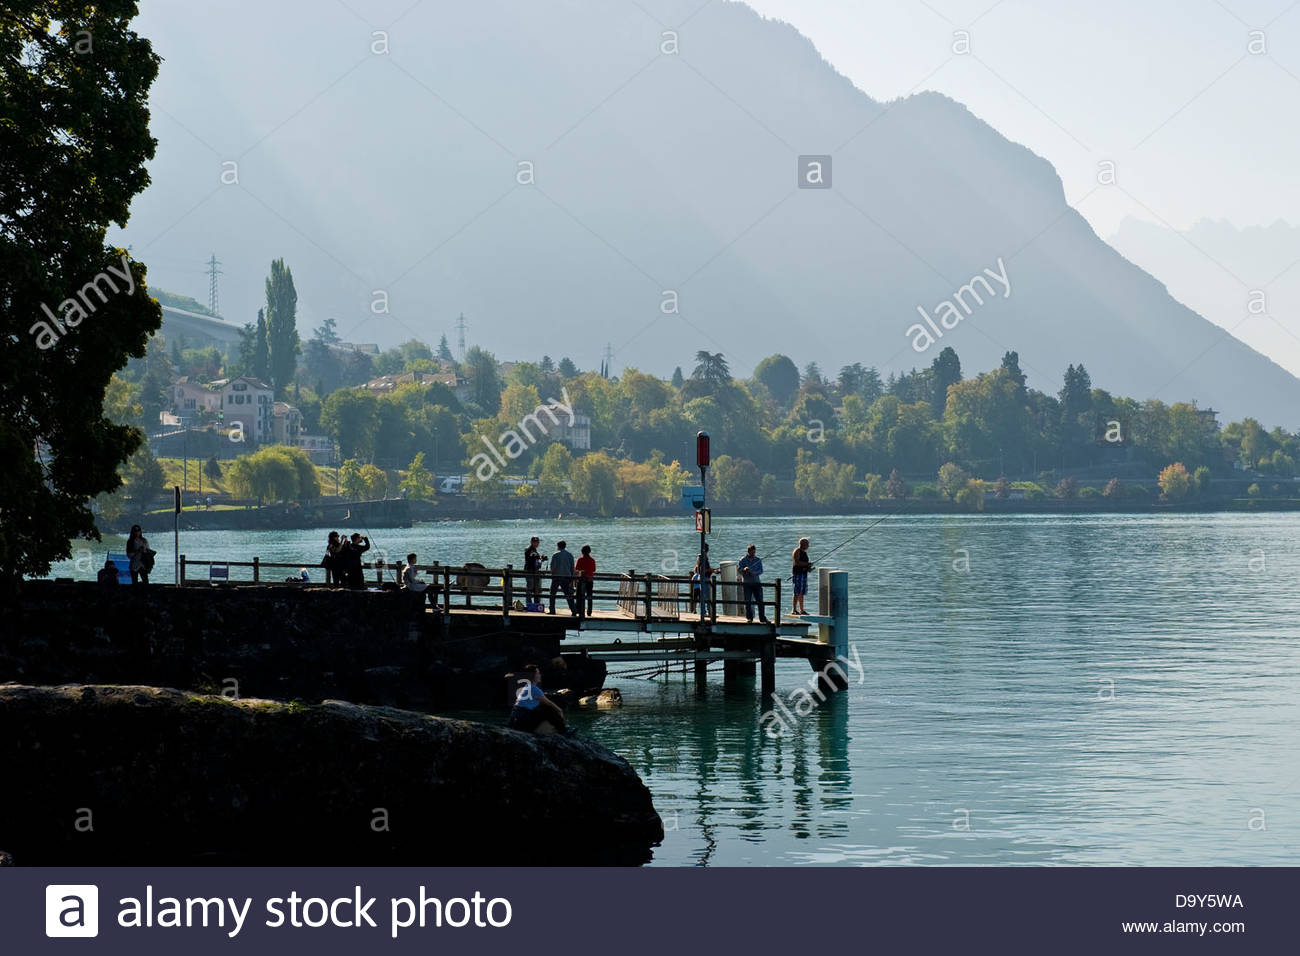 Leman lake,Montreux,Switzerland Stock Photo